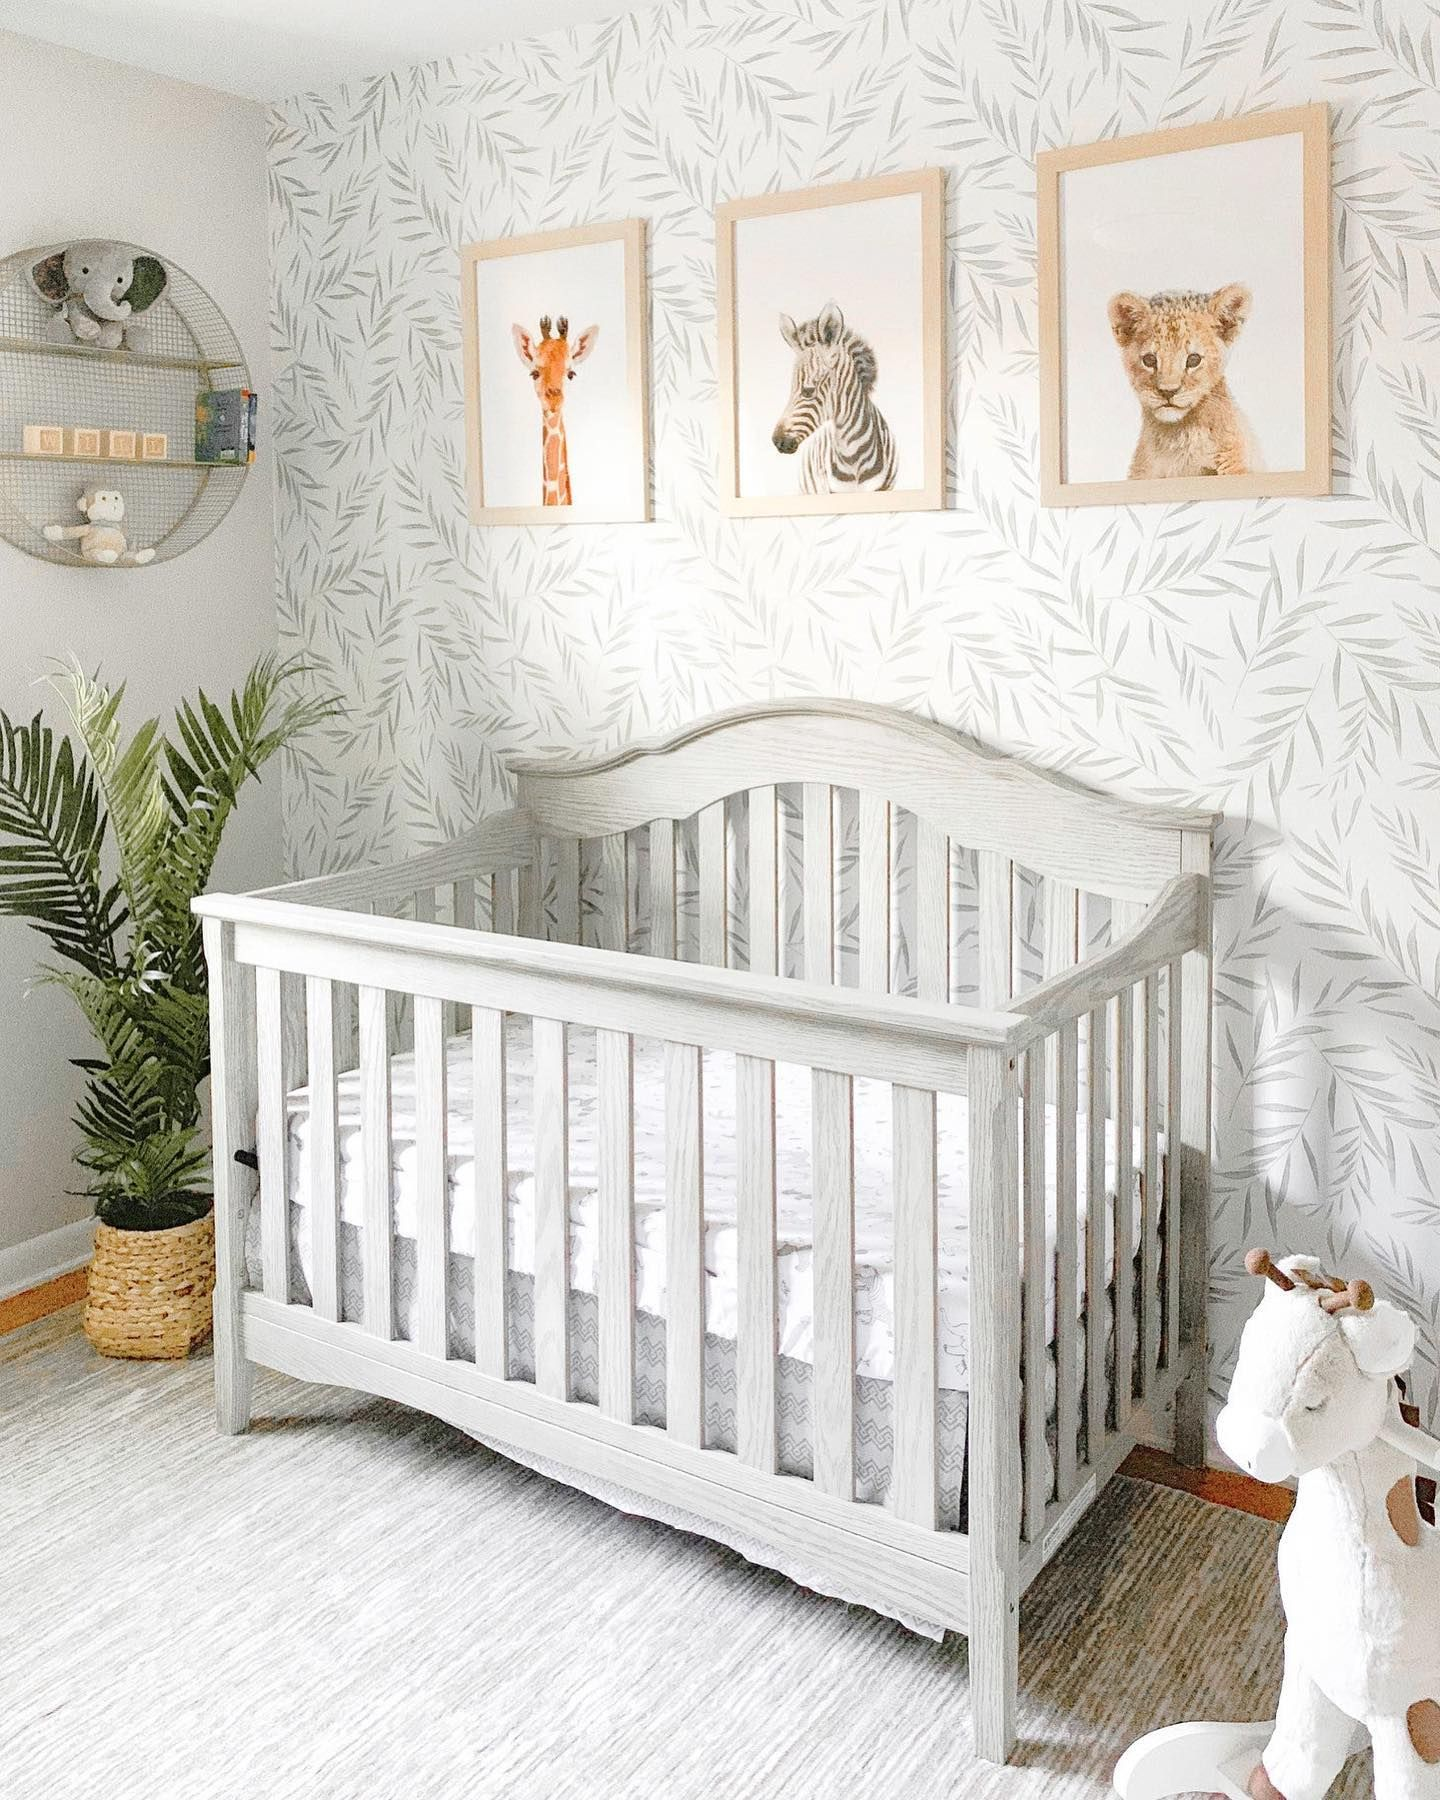 Soft Botanicals Make For The Most Adorable Gender Neutral Rooms Tap For Deets On This New Wallpape In 2020 Nursery Baby Room Baby Boy Room Nursery Nursery Room Design